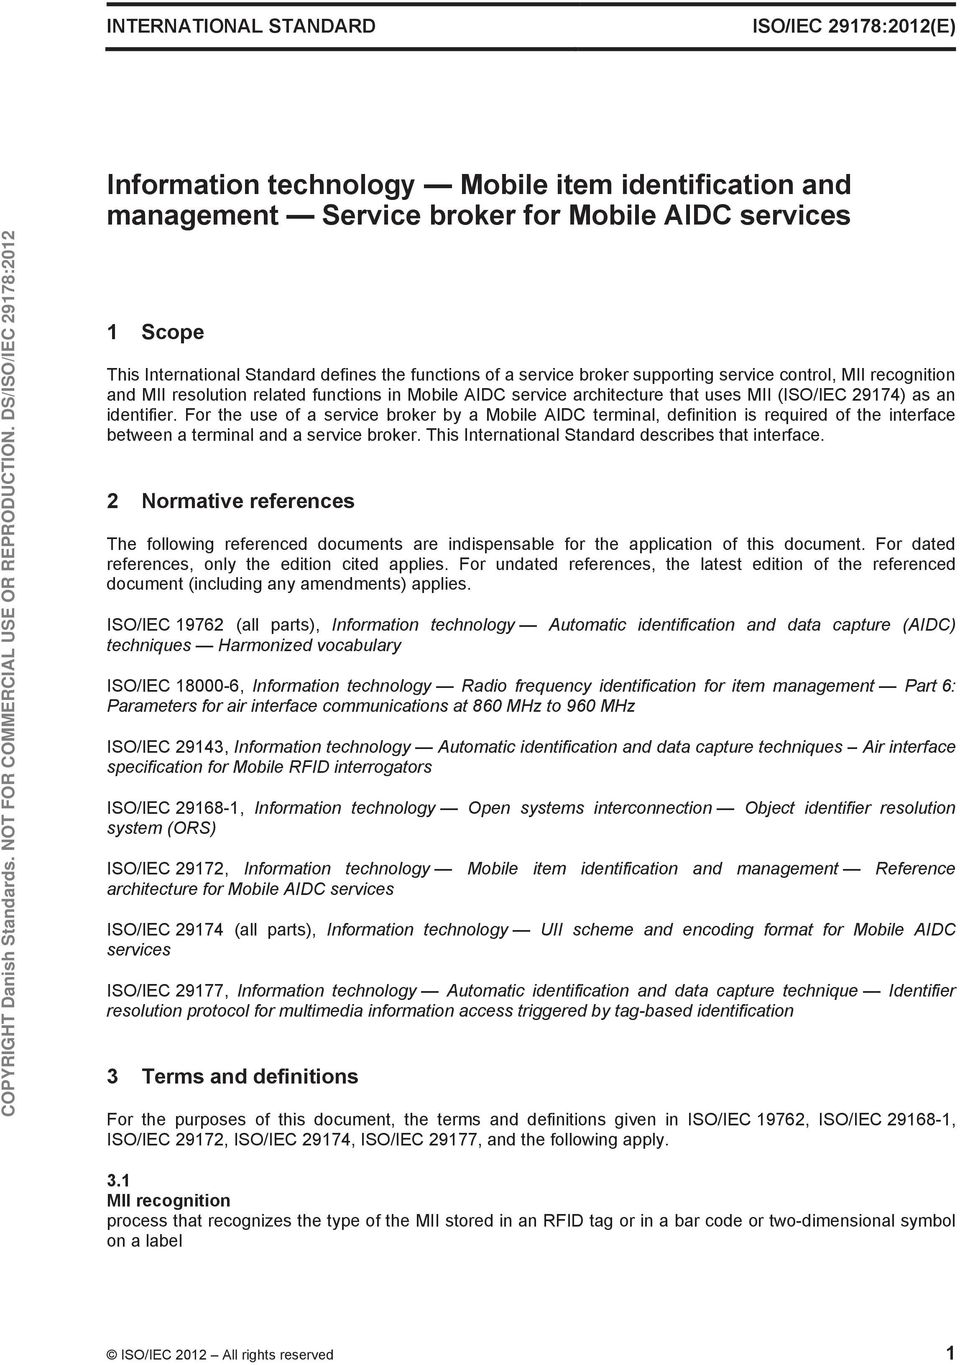 For the use of a service broker by a Mobile AIDC terminal, definition is required of the interface between a terminal and a service broker. This International Standard describes that interface.